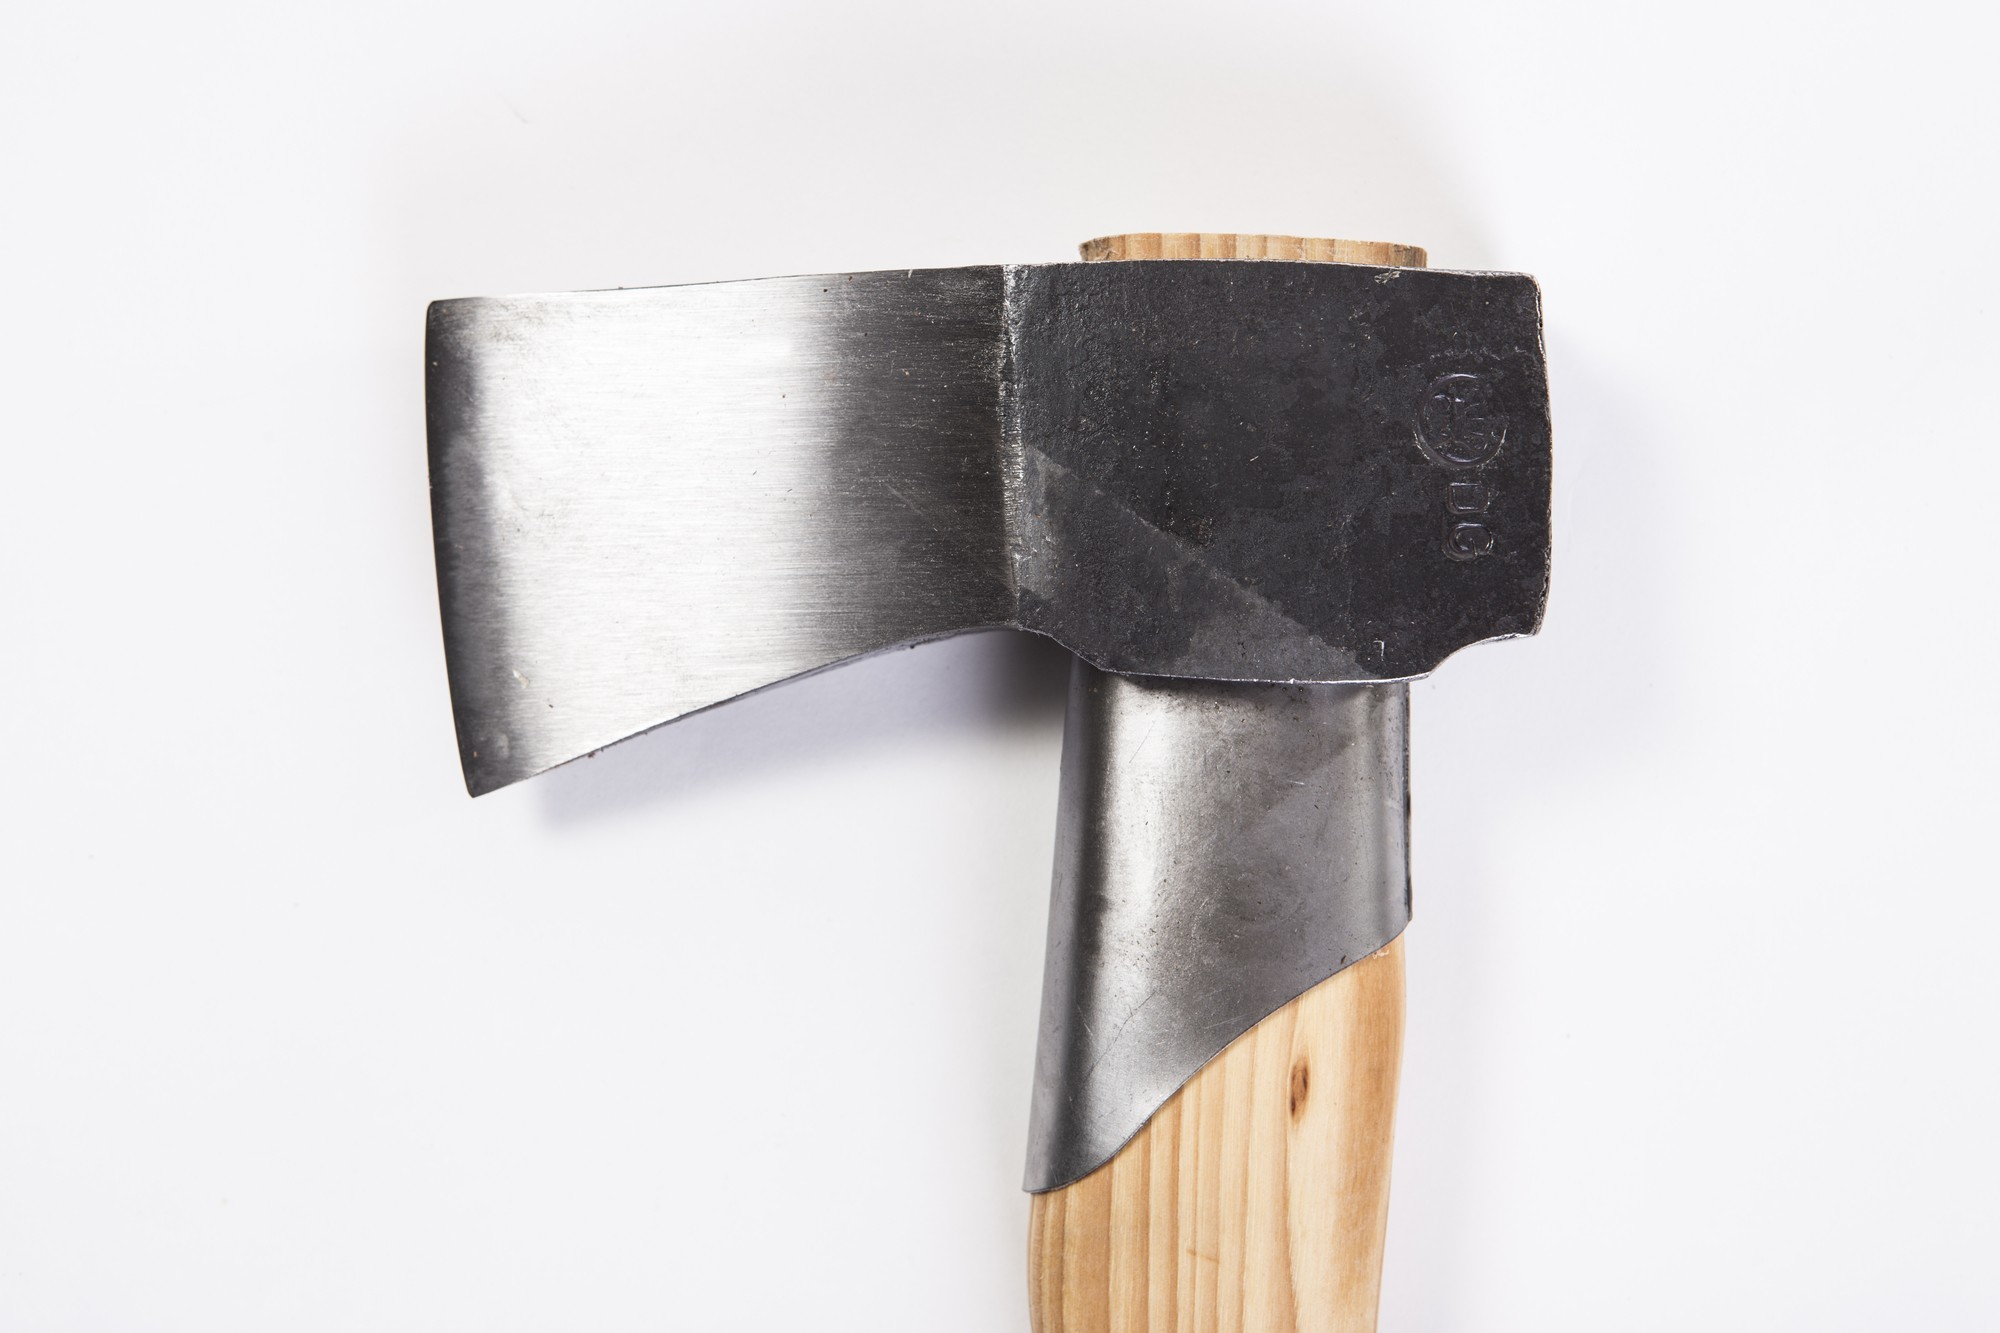 Большой колун Gransfors Bruks (Large Splitting Axe)